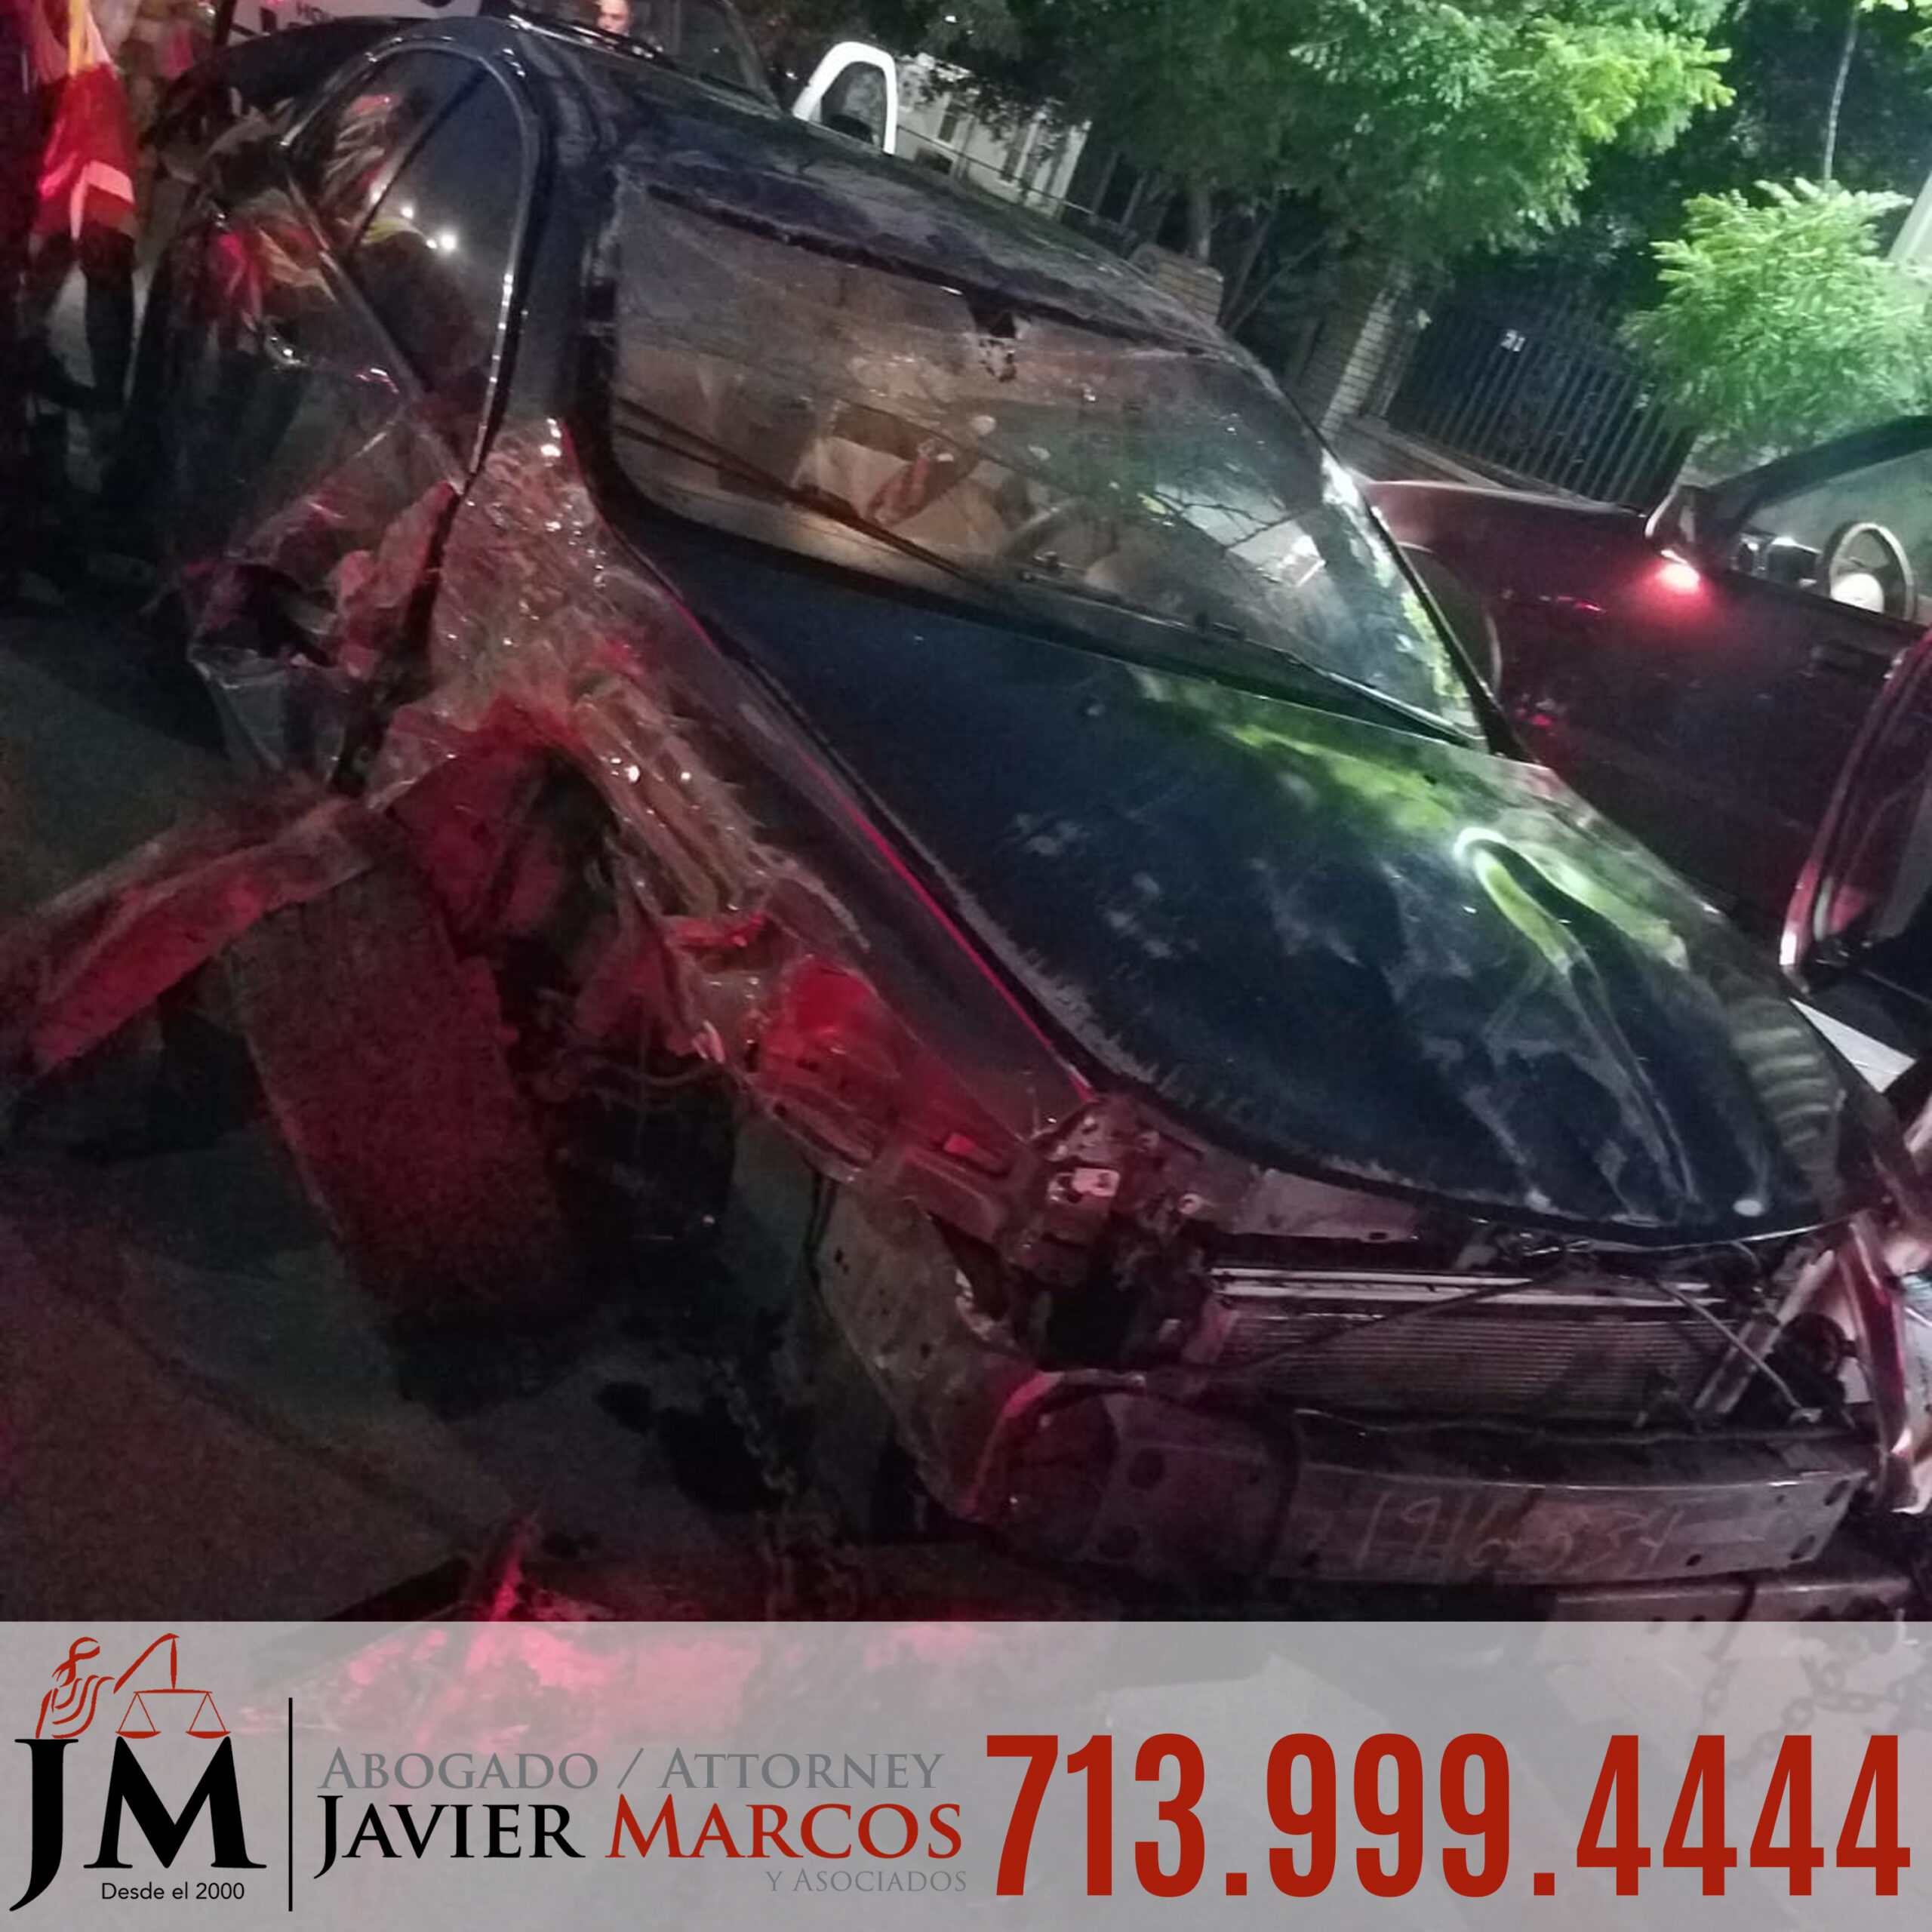 Car Wreck Lawyer | Attorney Javier Marcos | 713.999.4444